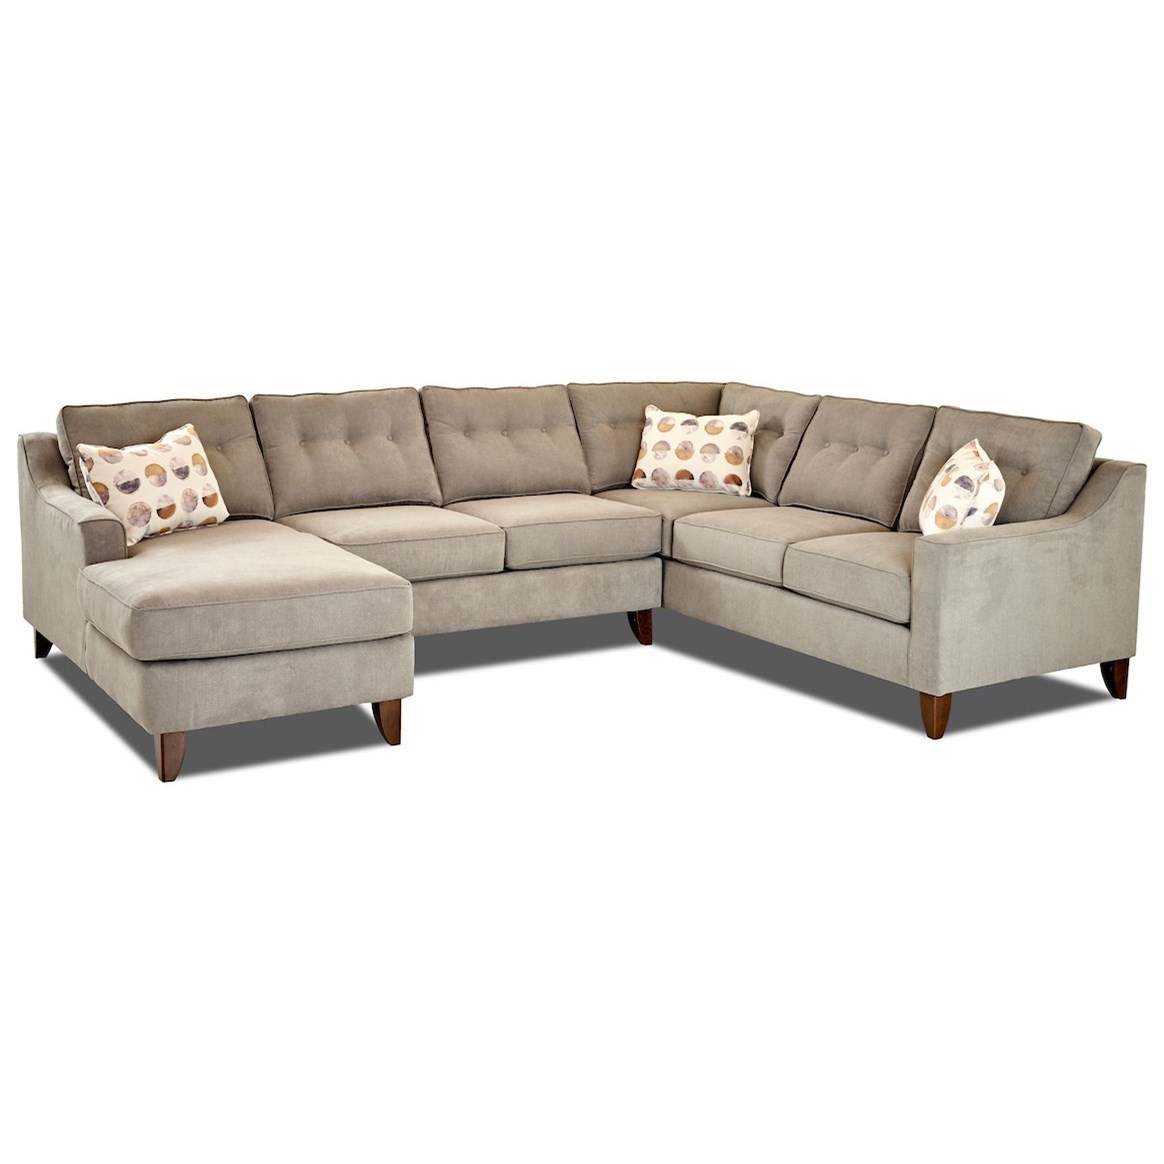 Audrina Contermporary 3 Piece Sectional Sofa by Klaussner at Johnny Janosik